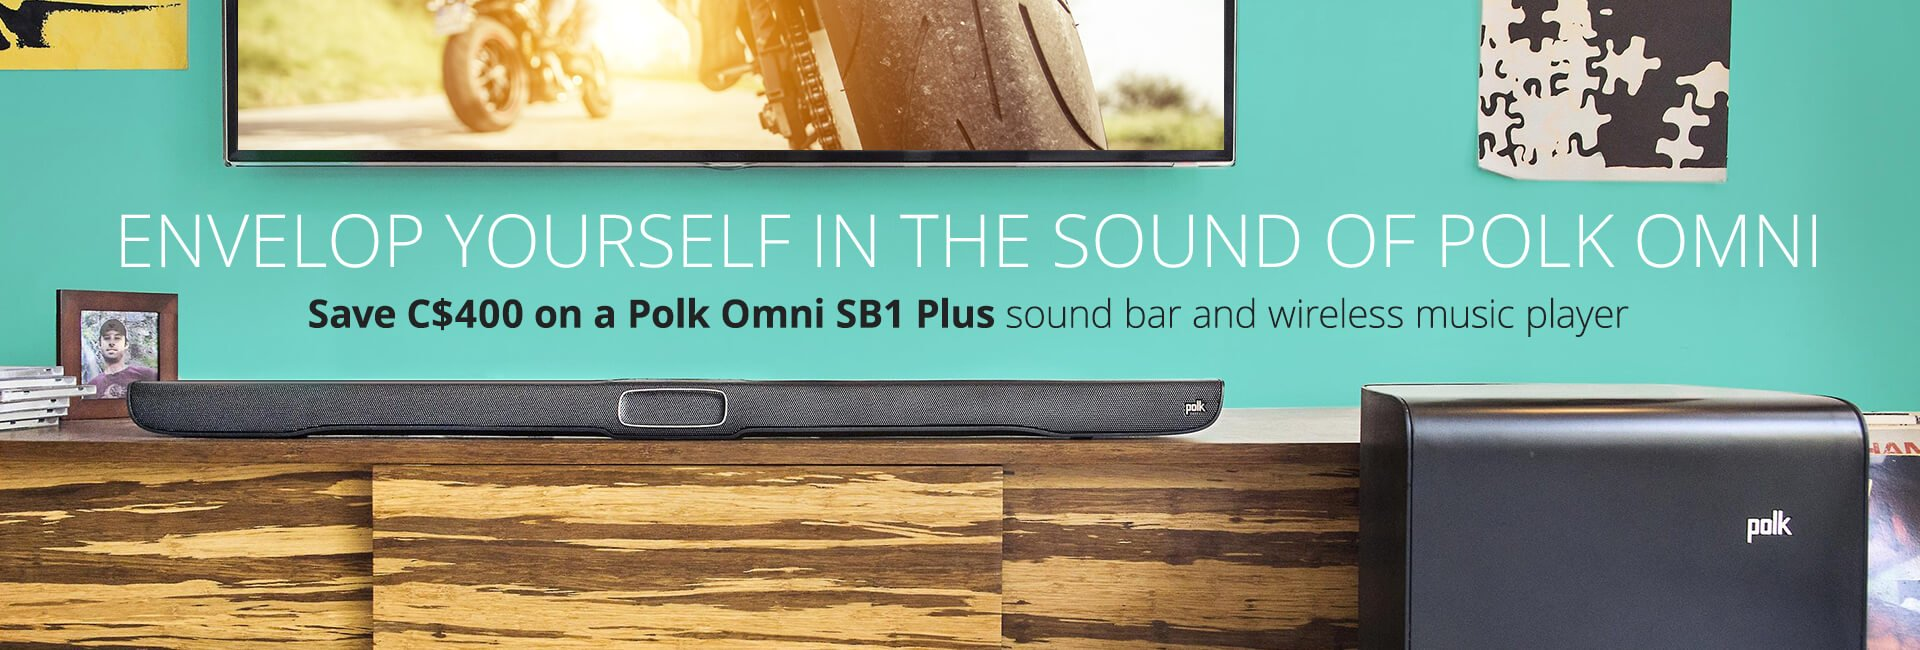 Save C$400 on a Polk Omni SB 1 Plus sound bar with Bluetooth® and wireless subwoofer